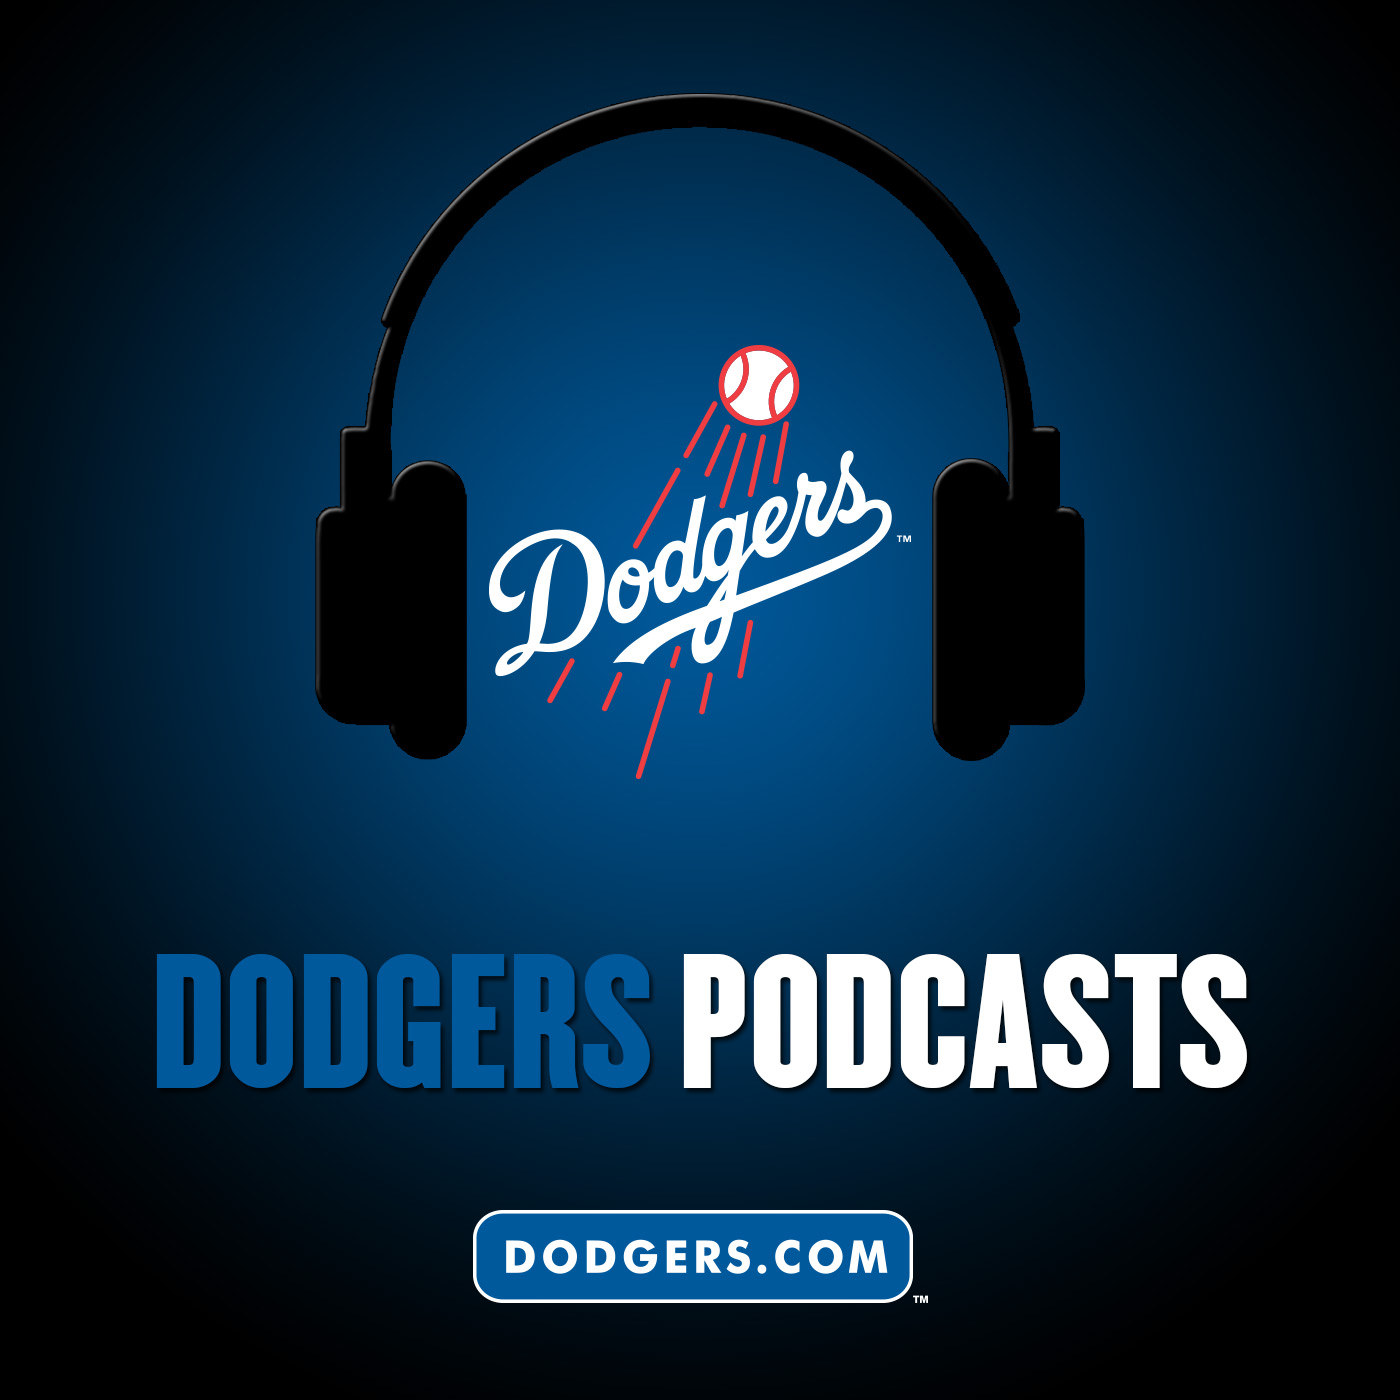 <![CDATA[Los Angeles Dodgers Podcast]]>